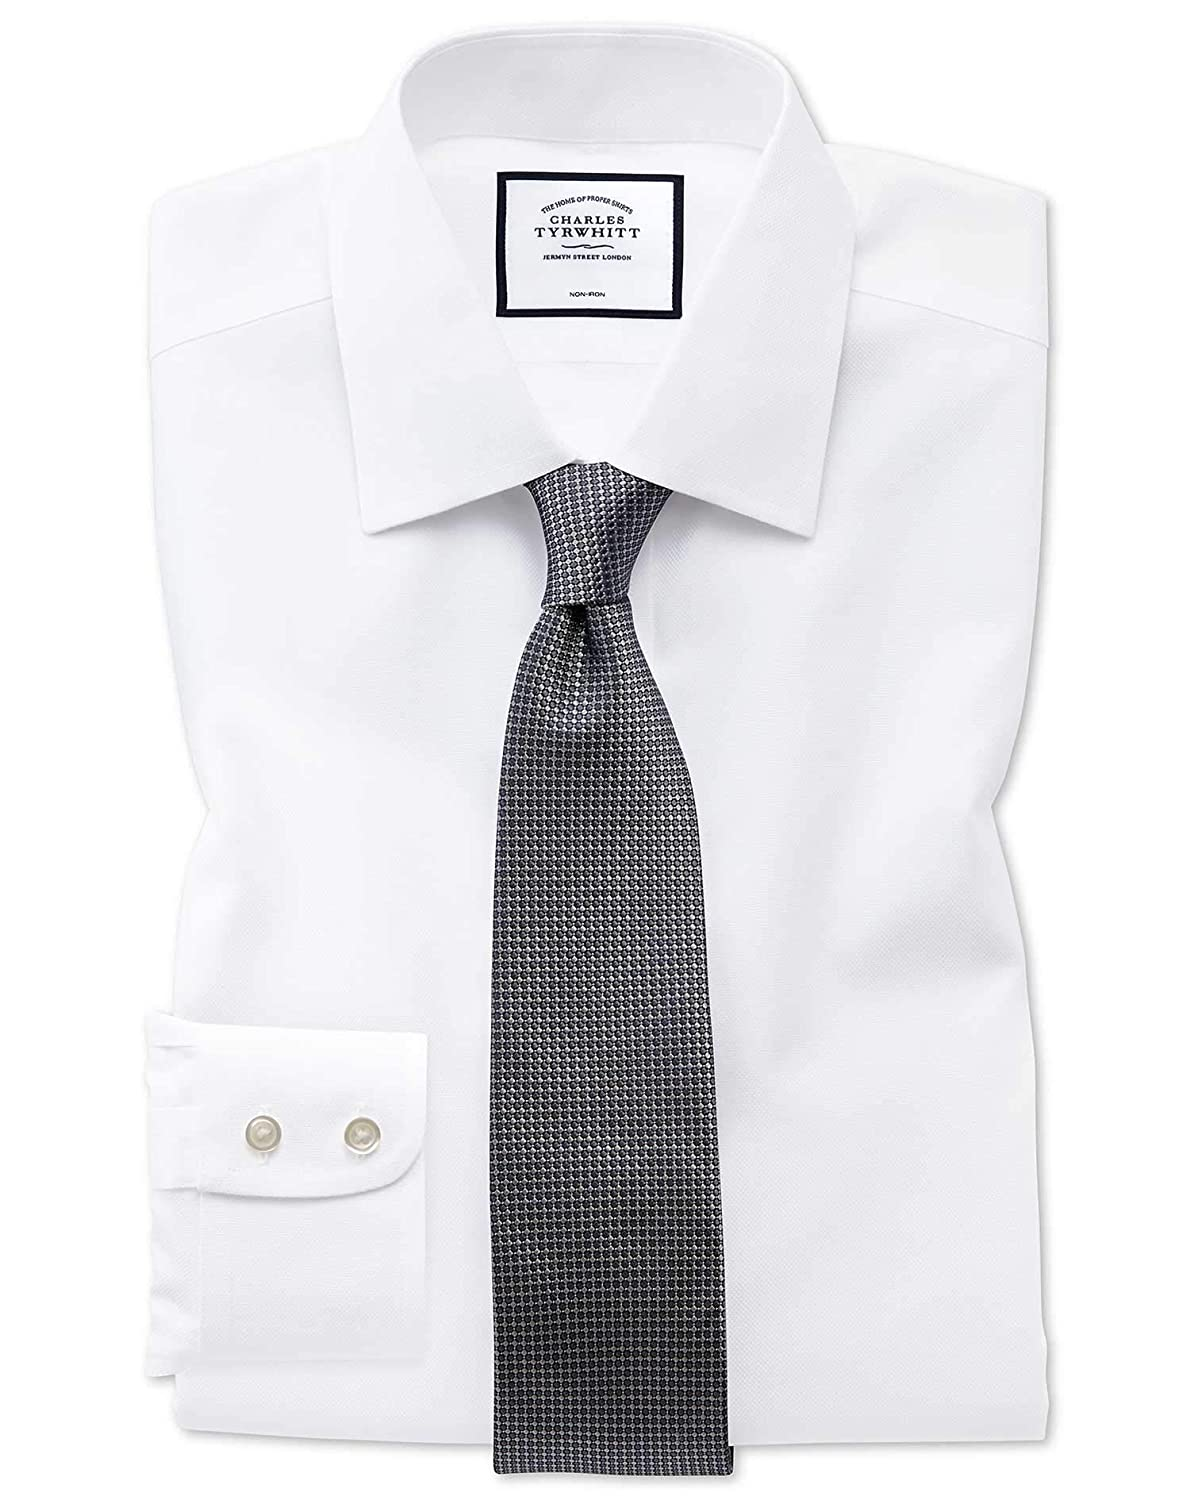 8701a853 Charles Tyrwhitt Classic Fit Non-Iron White Royal Panama Cotton Formal Shirt  Double Cuff: Amazon.co.uk: Clothing